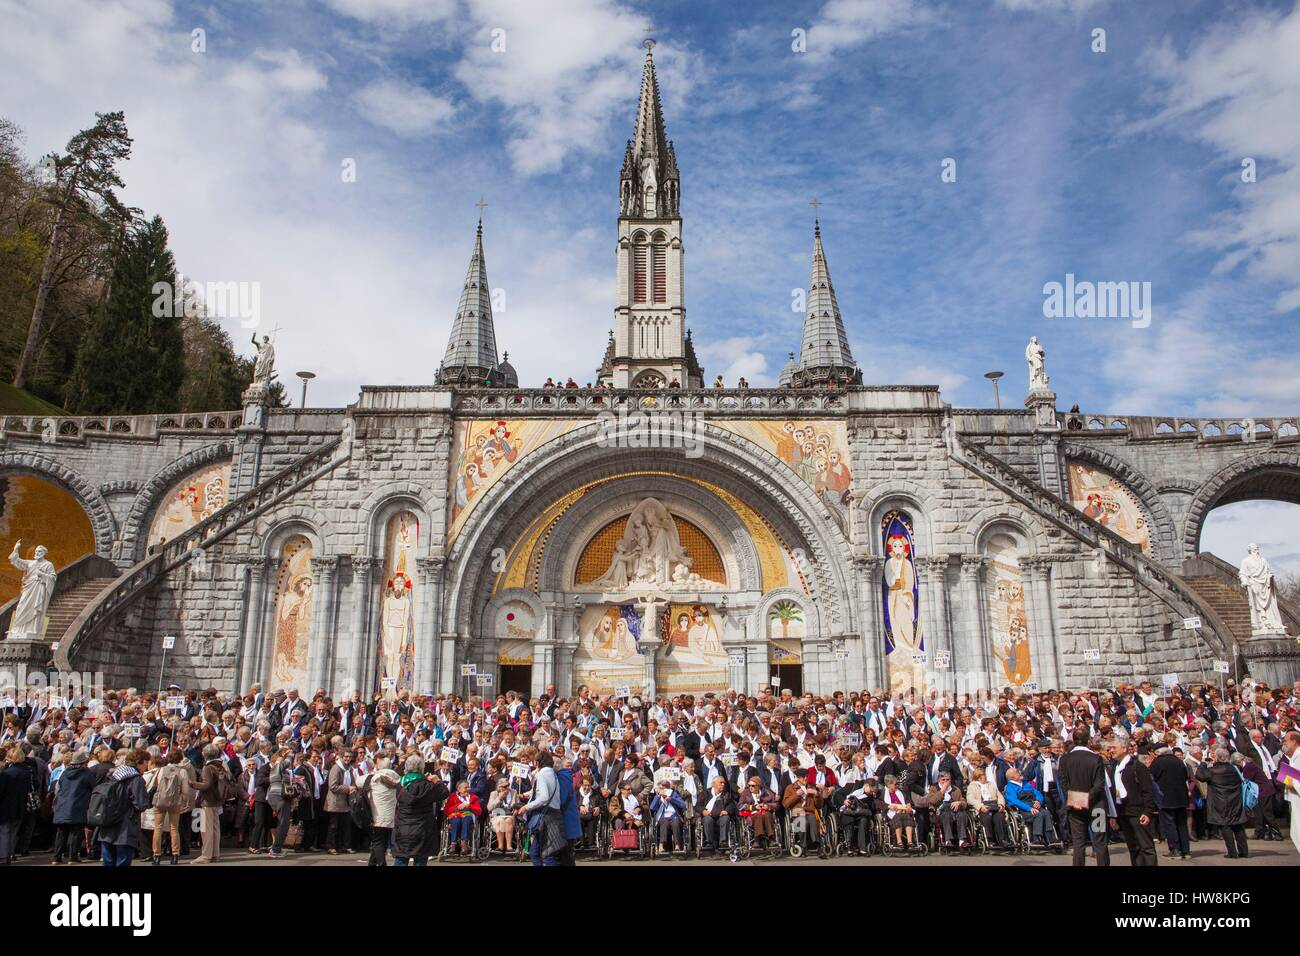 France, Hautes Pyrenees, Lourdes, Sanctuary of Our Lady of Lourdes, group photo in front of Rosary Basilica Stock Photo